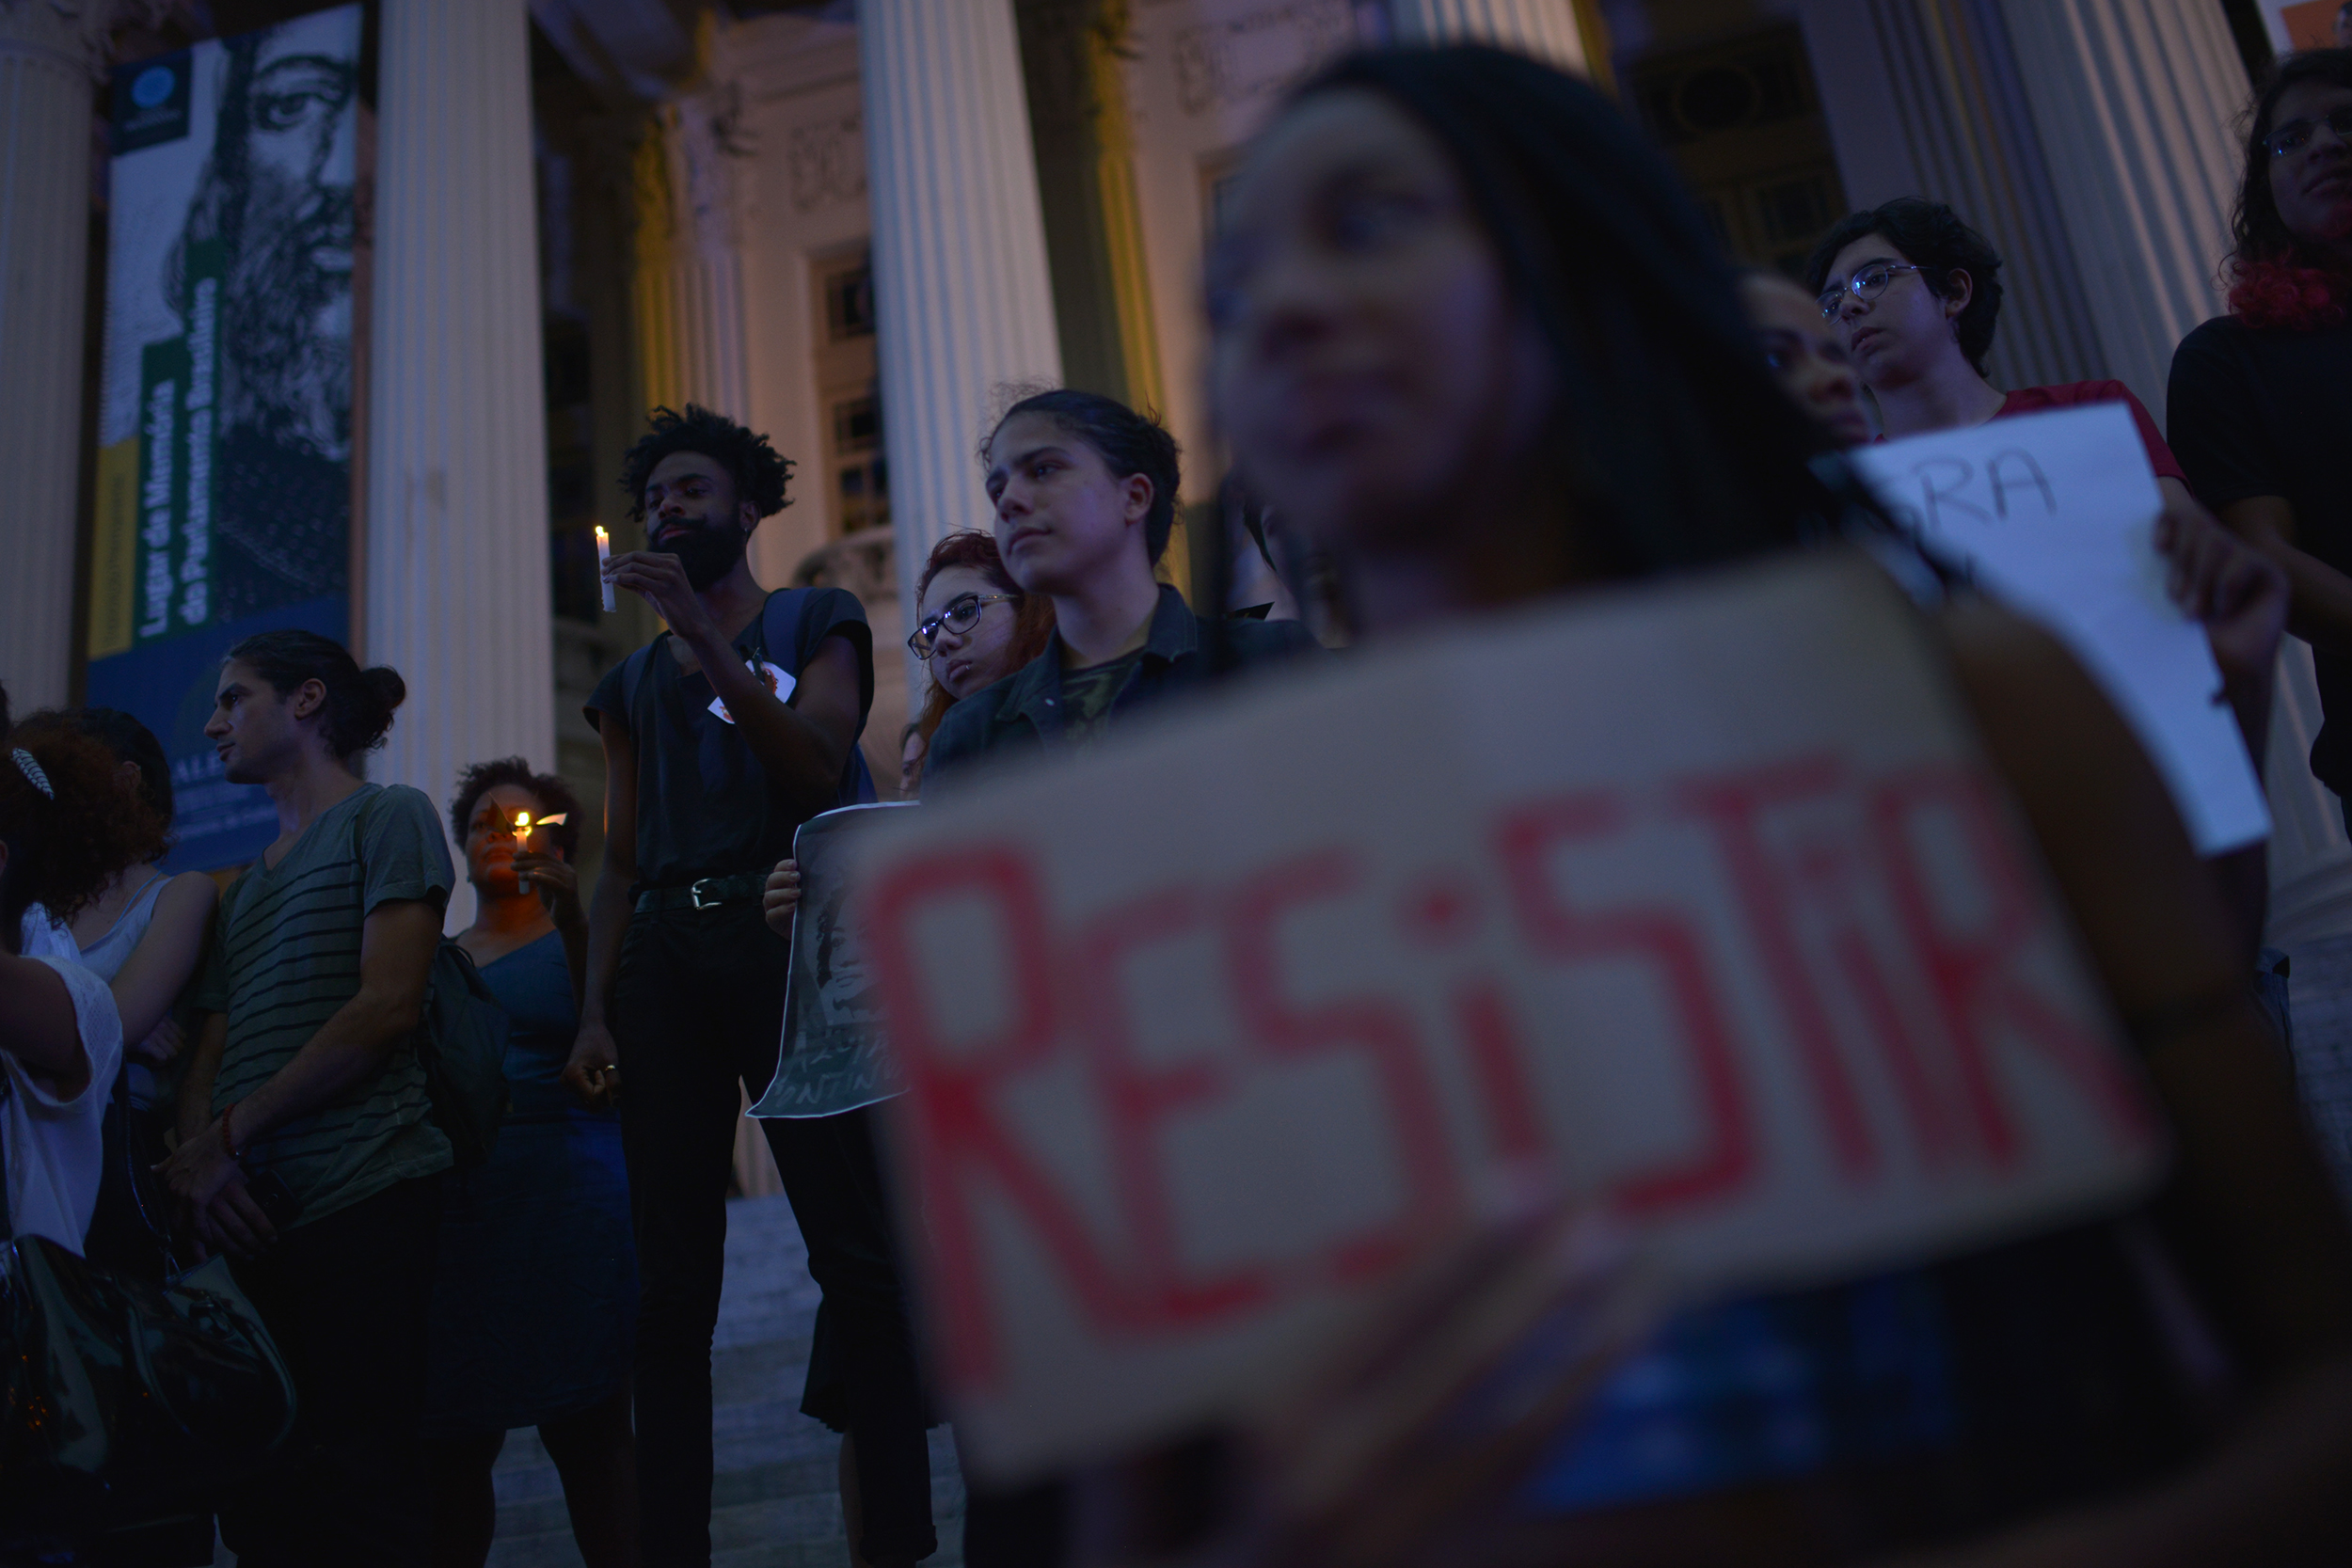 "March, 16, 2018. 6pm. In the second day, the demonstrators concentrated at the Rio de Janeiro Legislative Assembly and then walked to Cinêlandia square. The poster says ""Resist""."